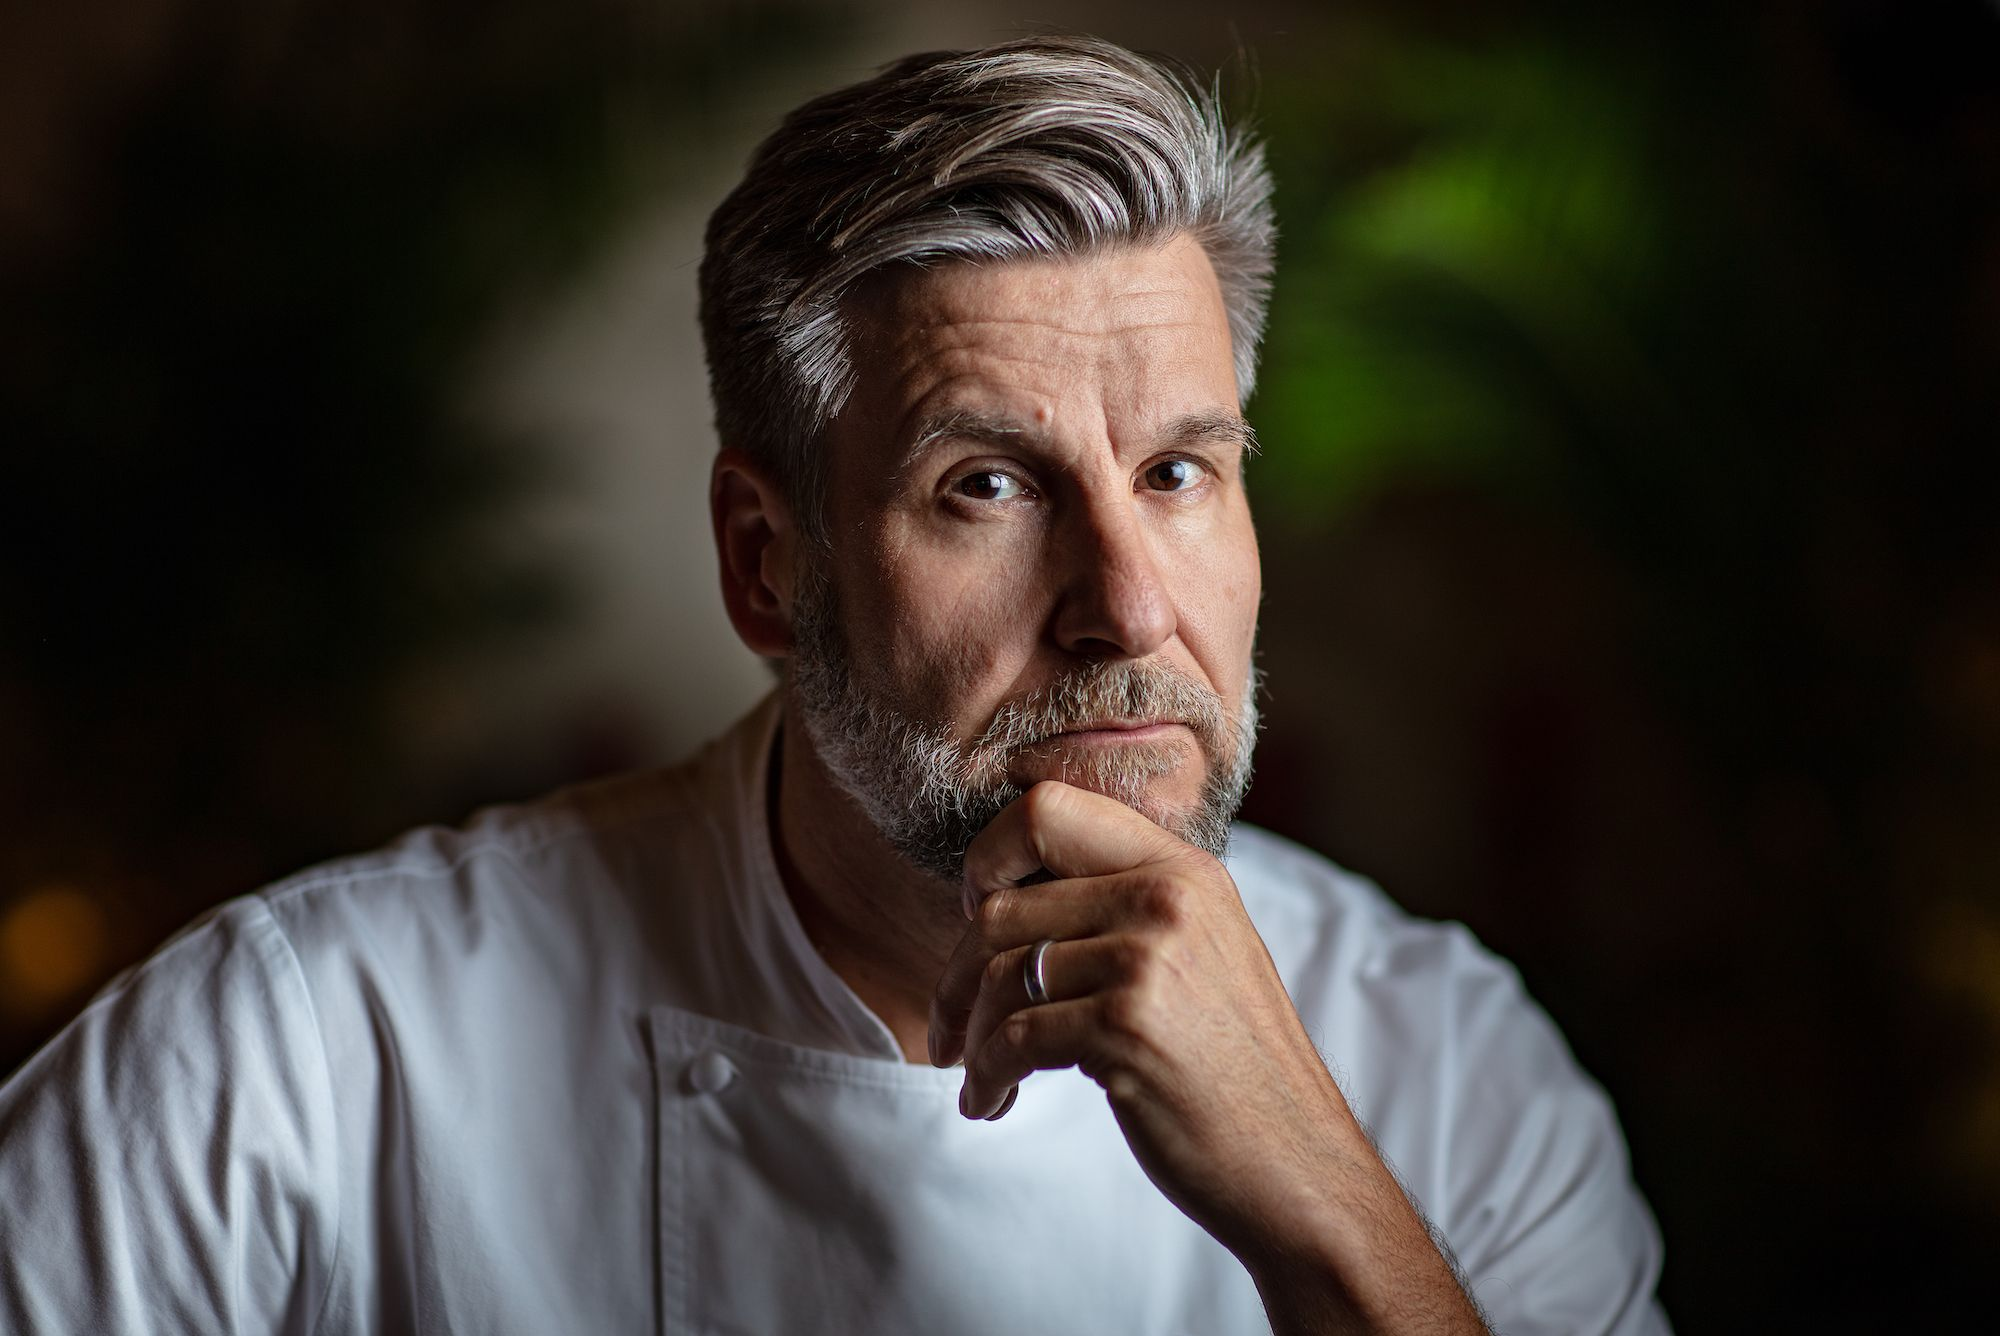 Chef Uwe Opocensky (Photo: Courtesy of Shangri-la)